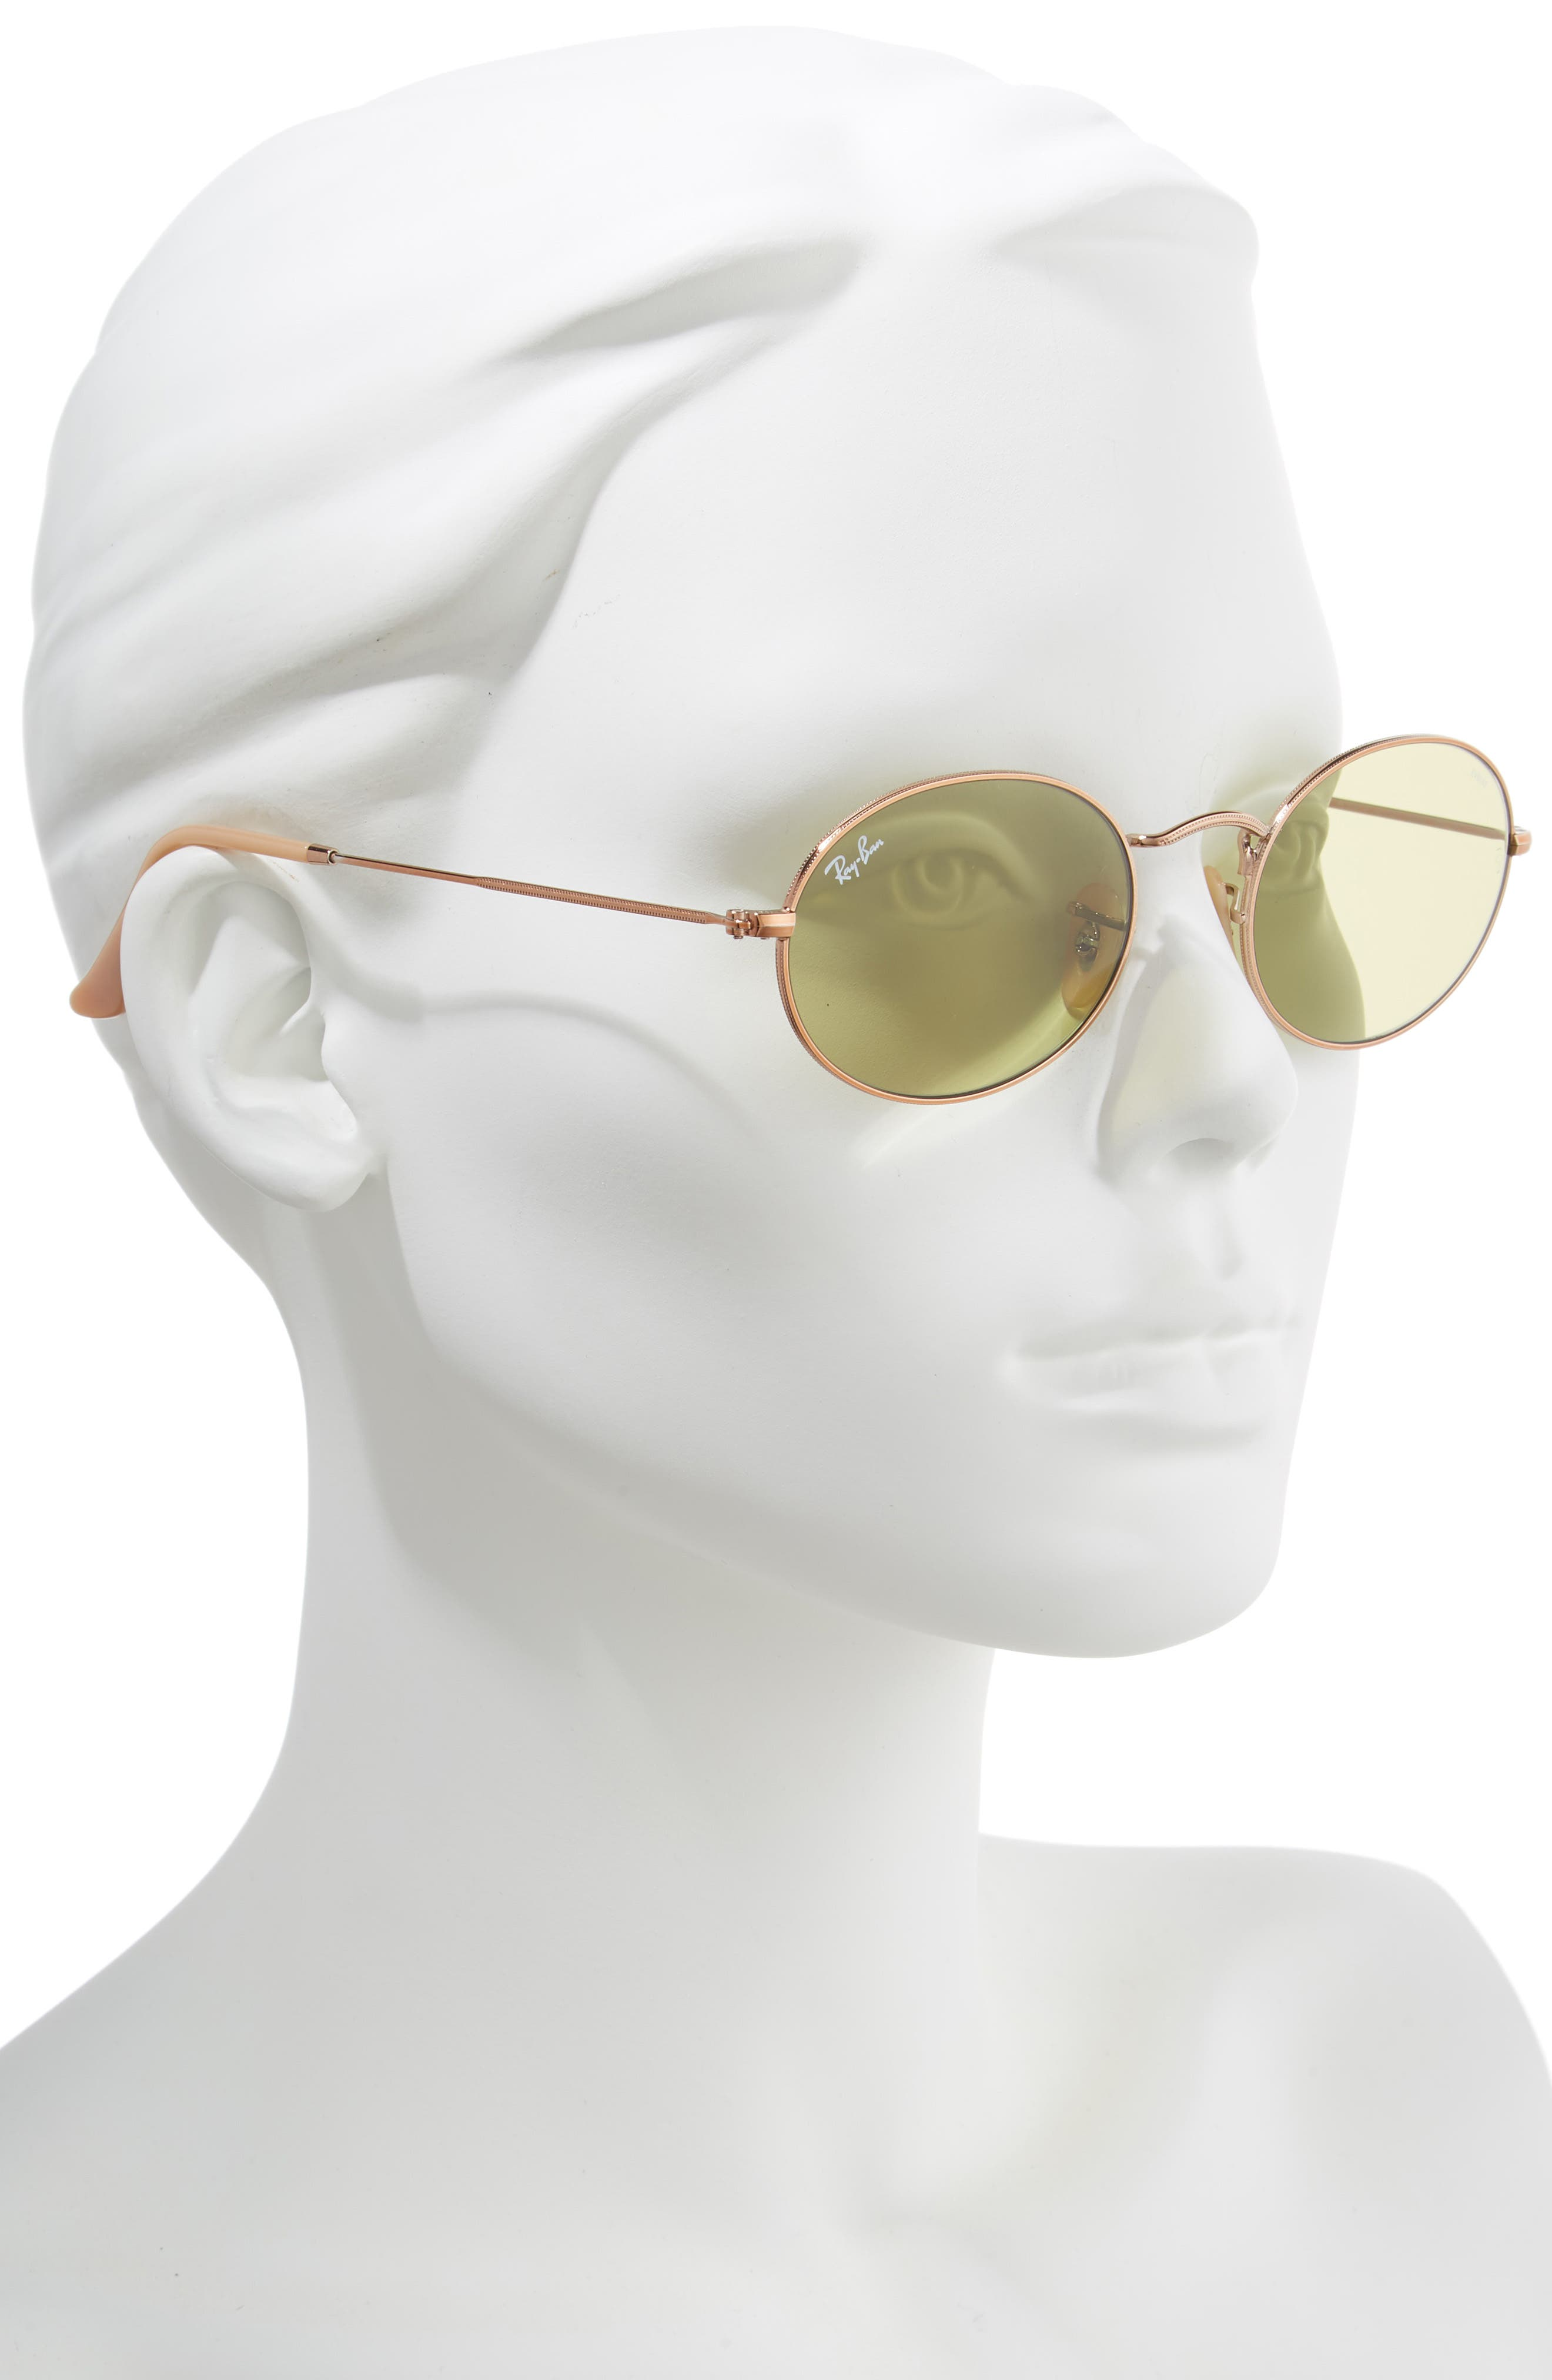 RAY-BAN, Evolve 54mm Polarized Oval Sunglasses, Alternate thumbnail 2, color, GOLD/ GREEN SOLID